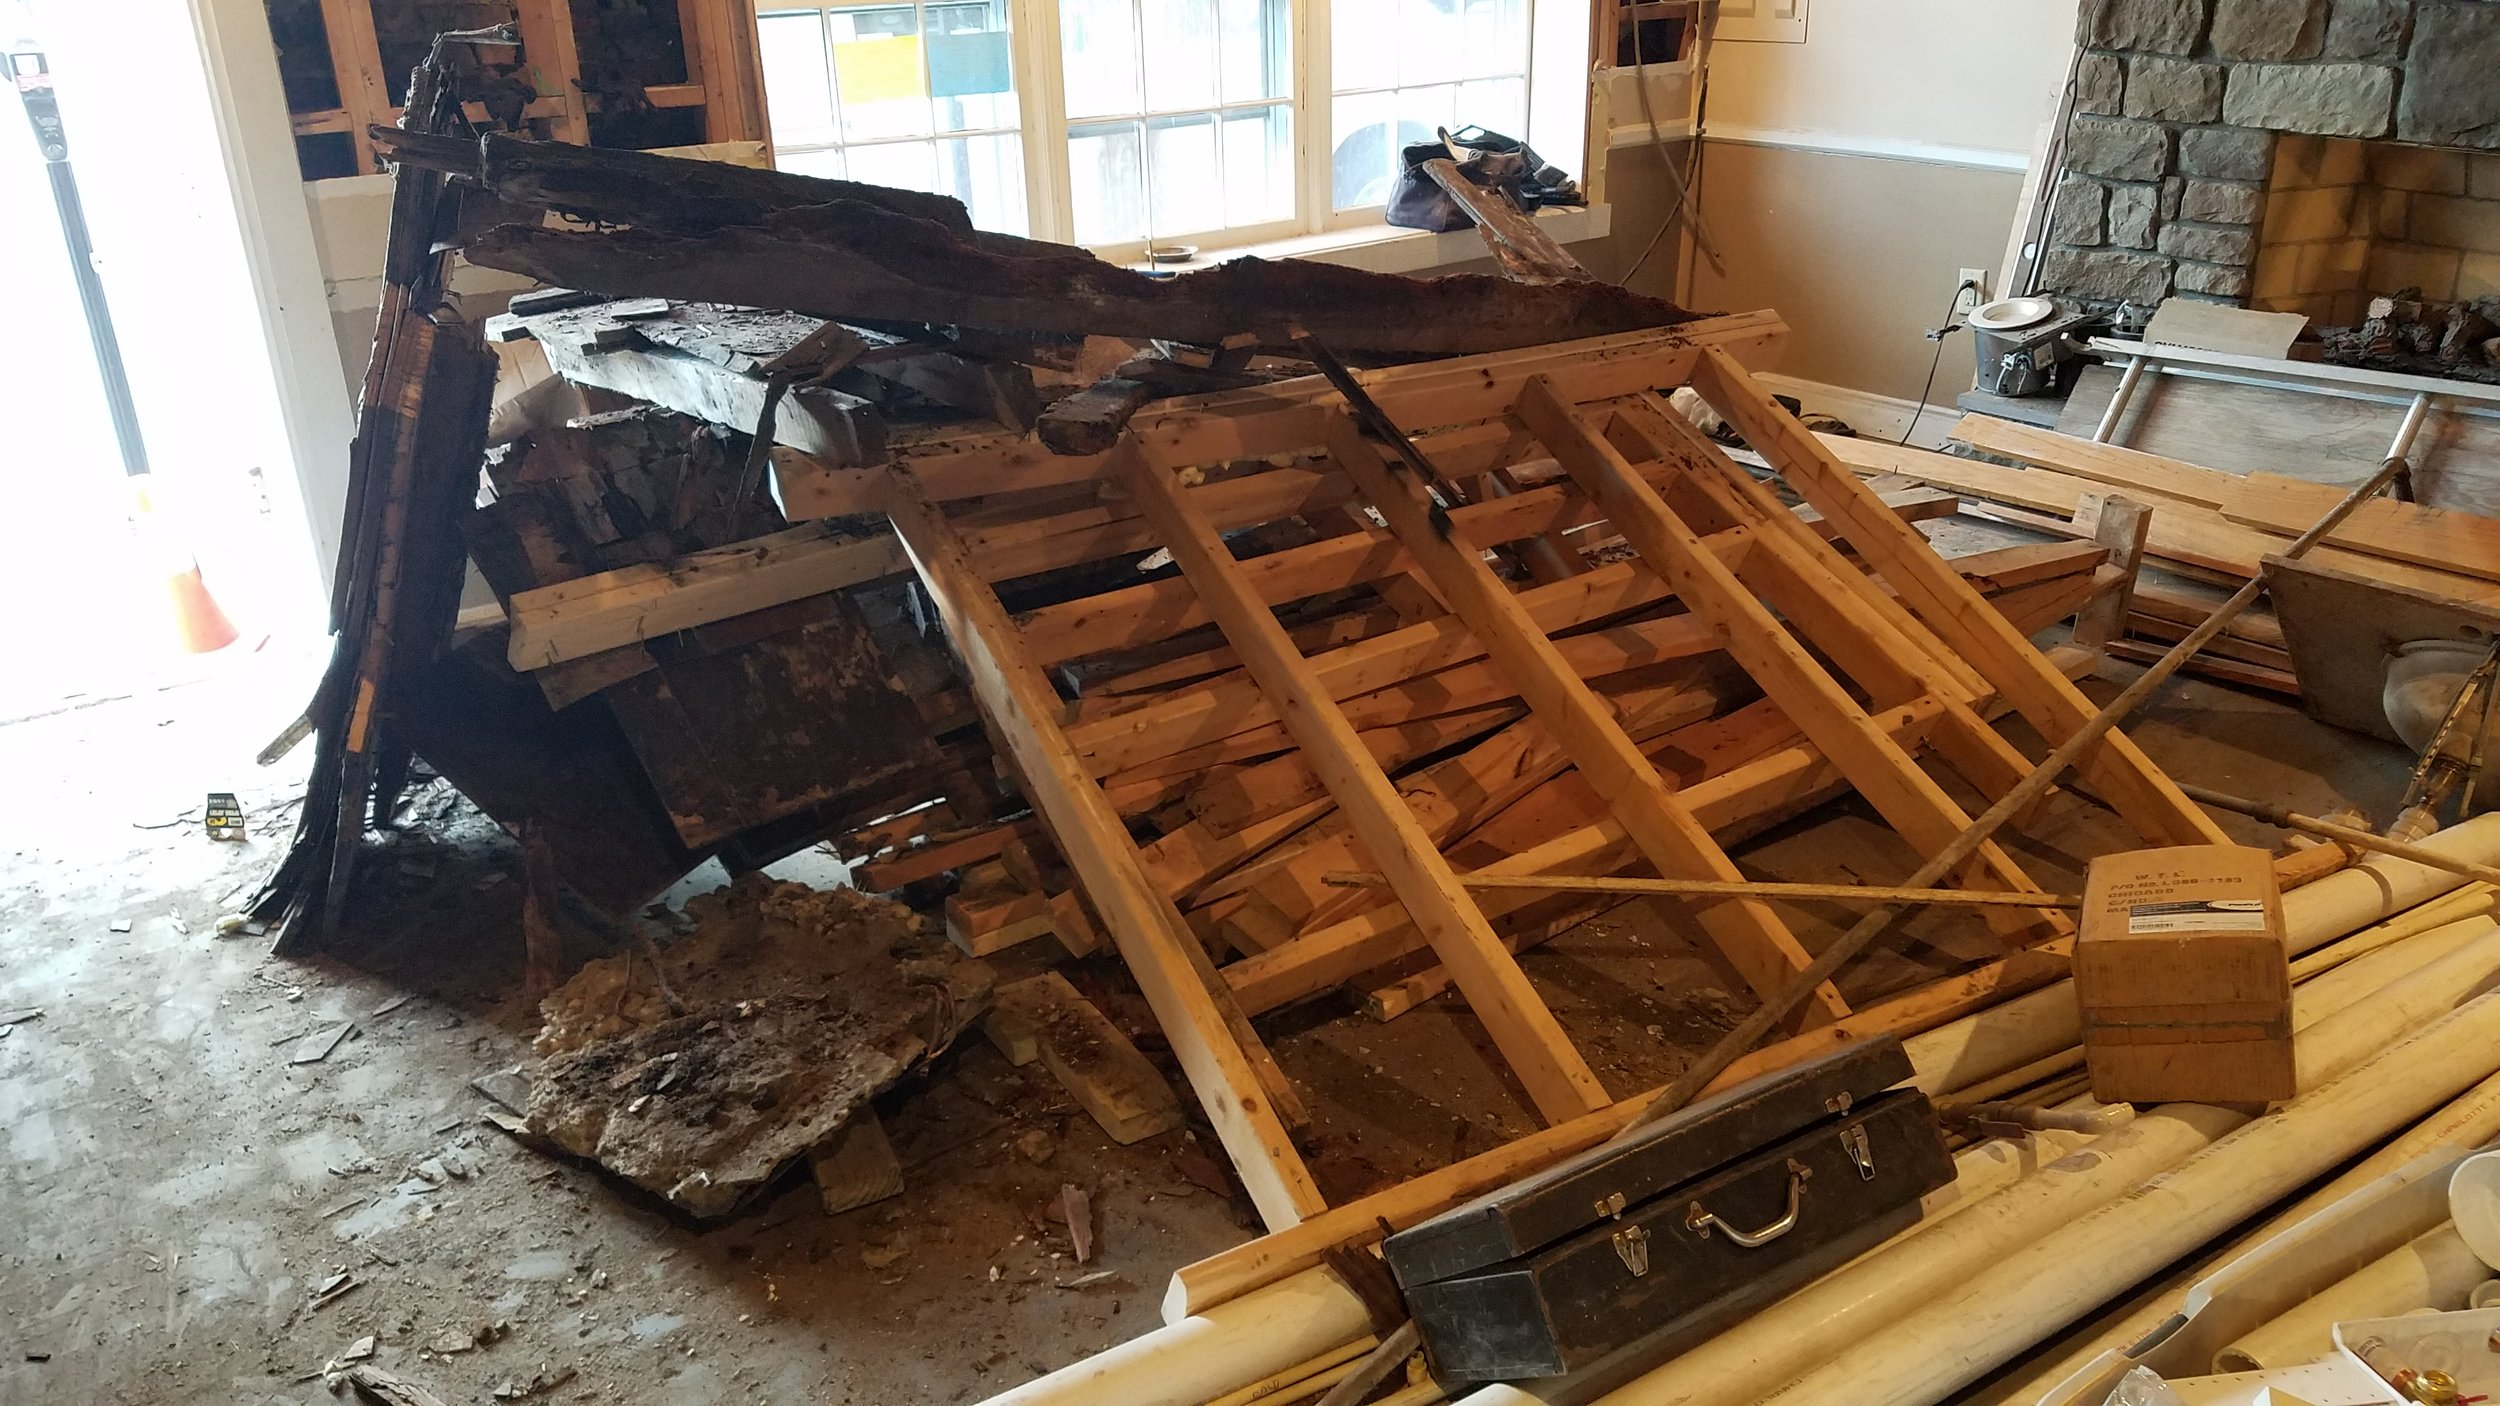 Debris from the old floor truss system